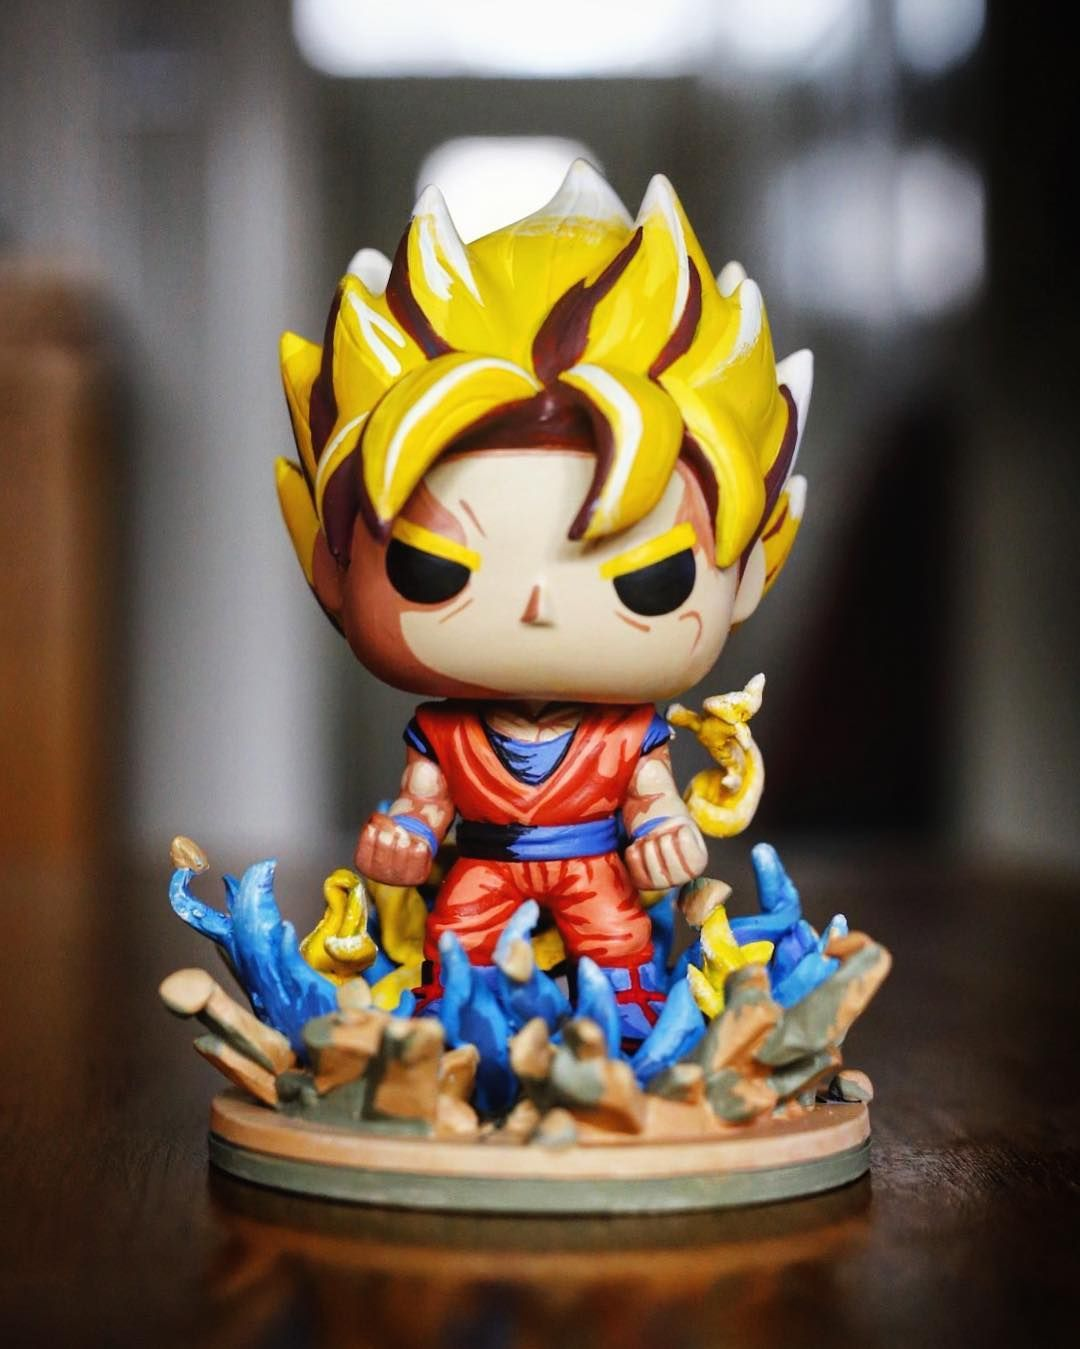 Abbernaffy Customs Cellshade Goku Funko Pop Abbernaffy Customs